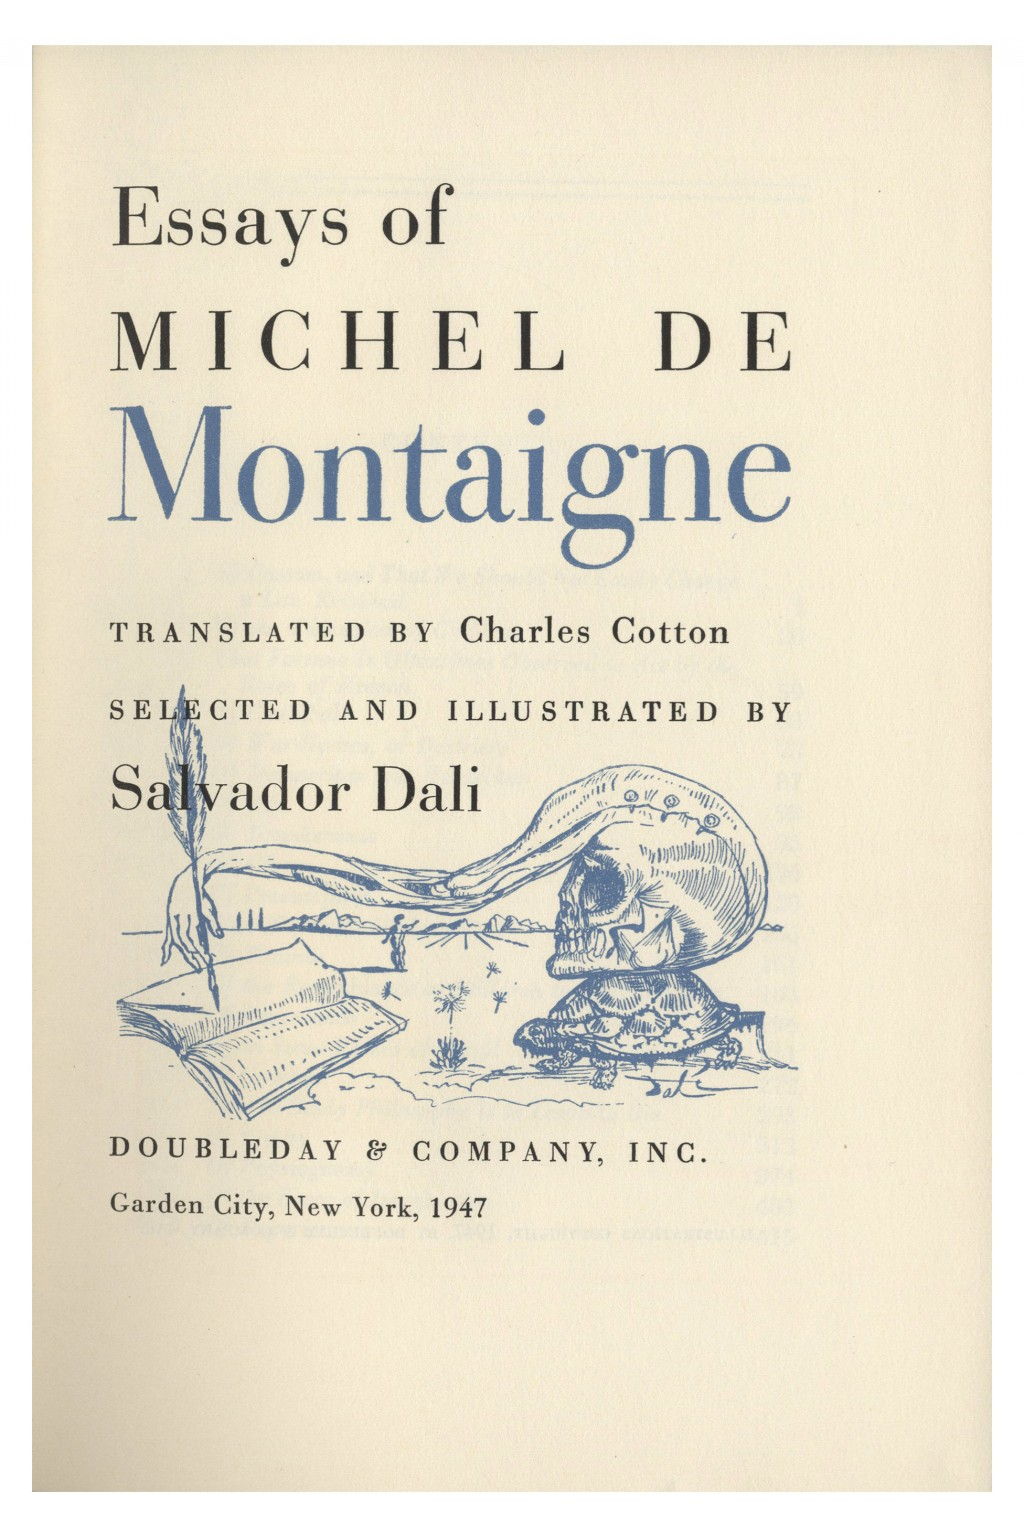 016 Essay Example Salvador Dali Signed Essays Michel Montaigne 53508d Lg Frightening De On Experience Summary Quotes Large